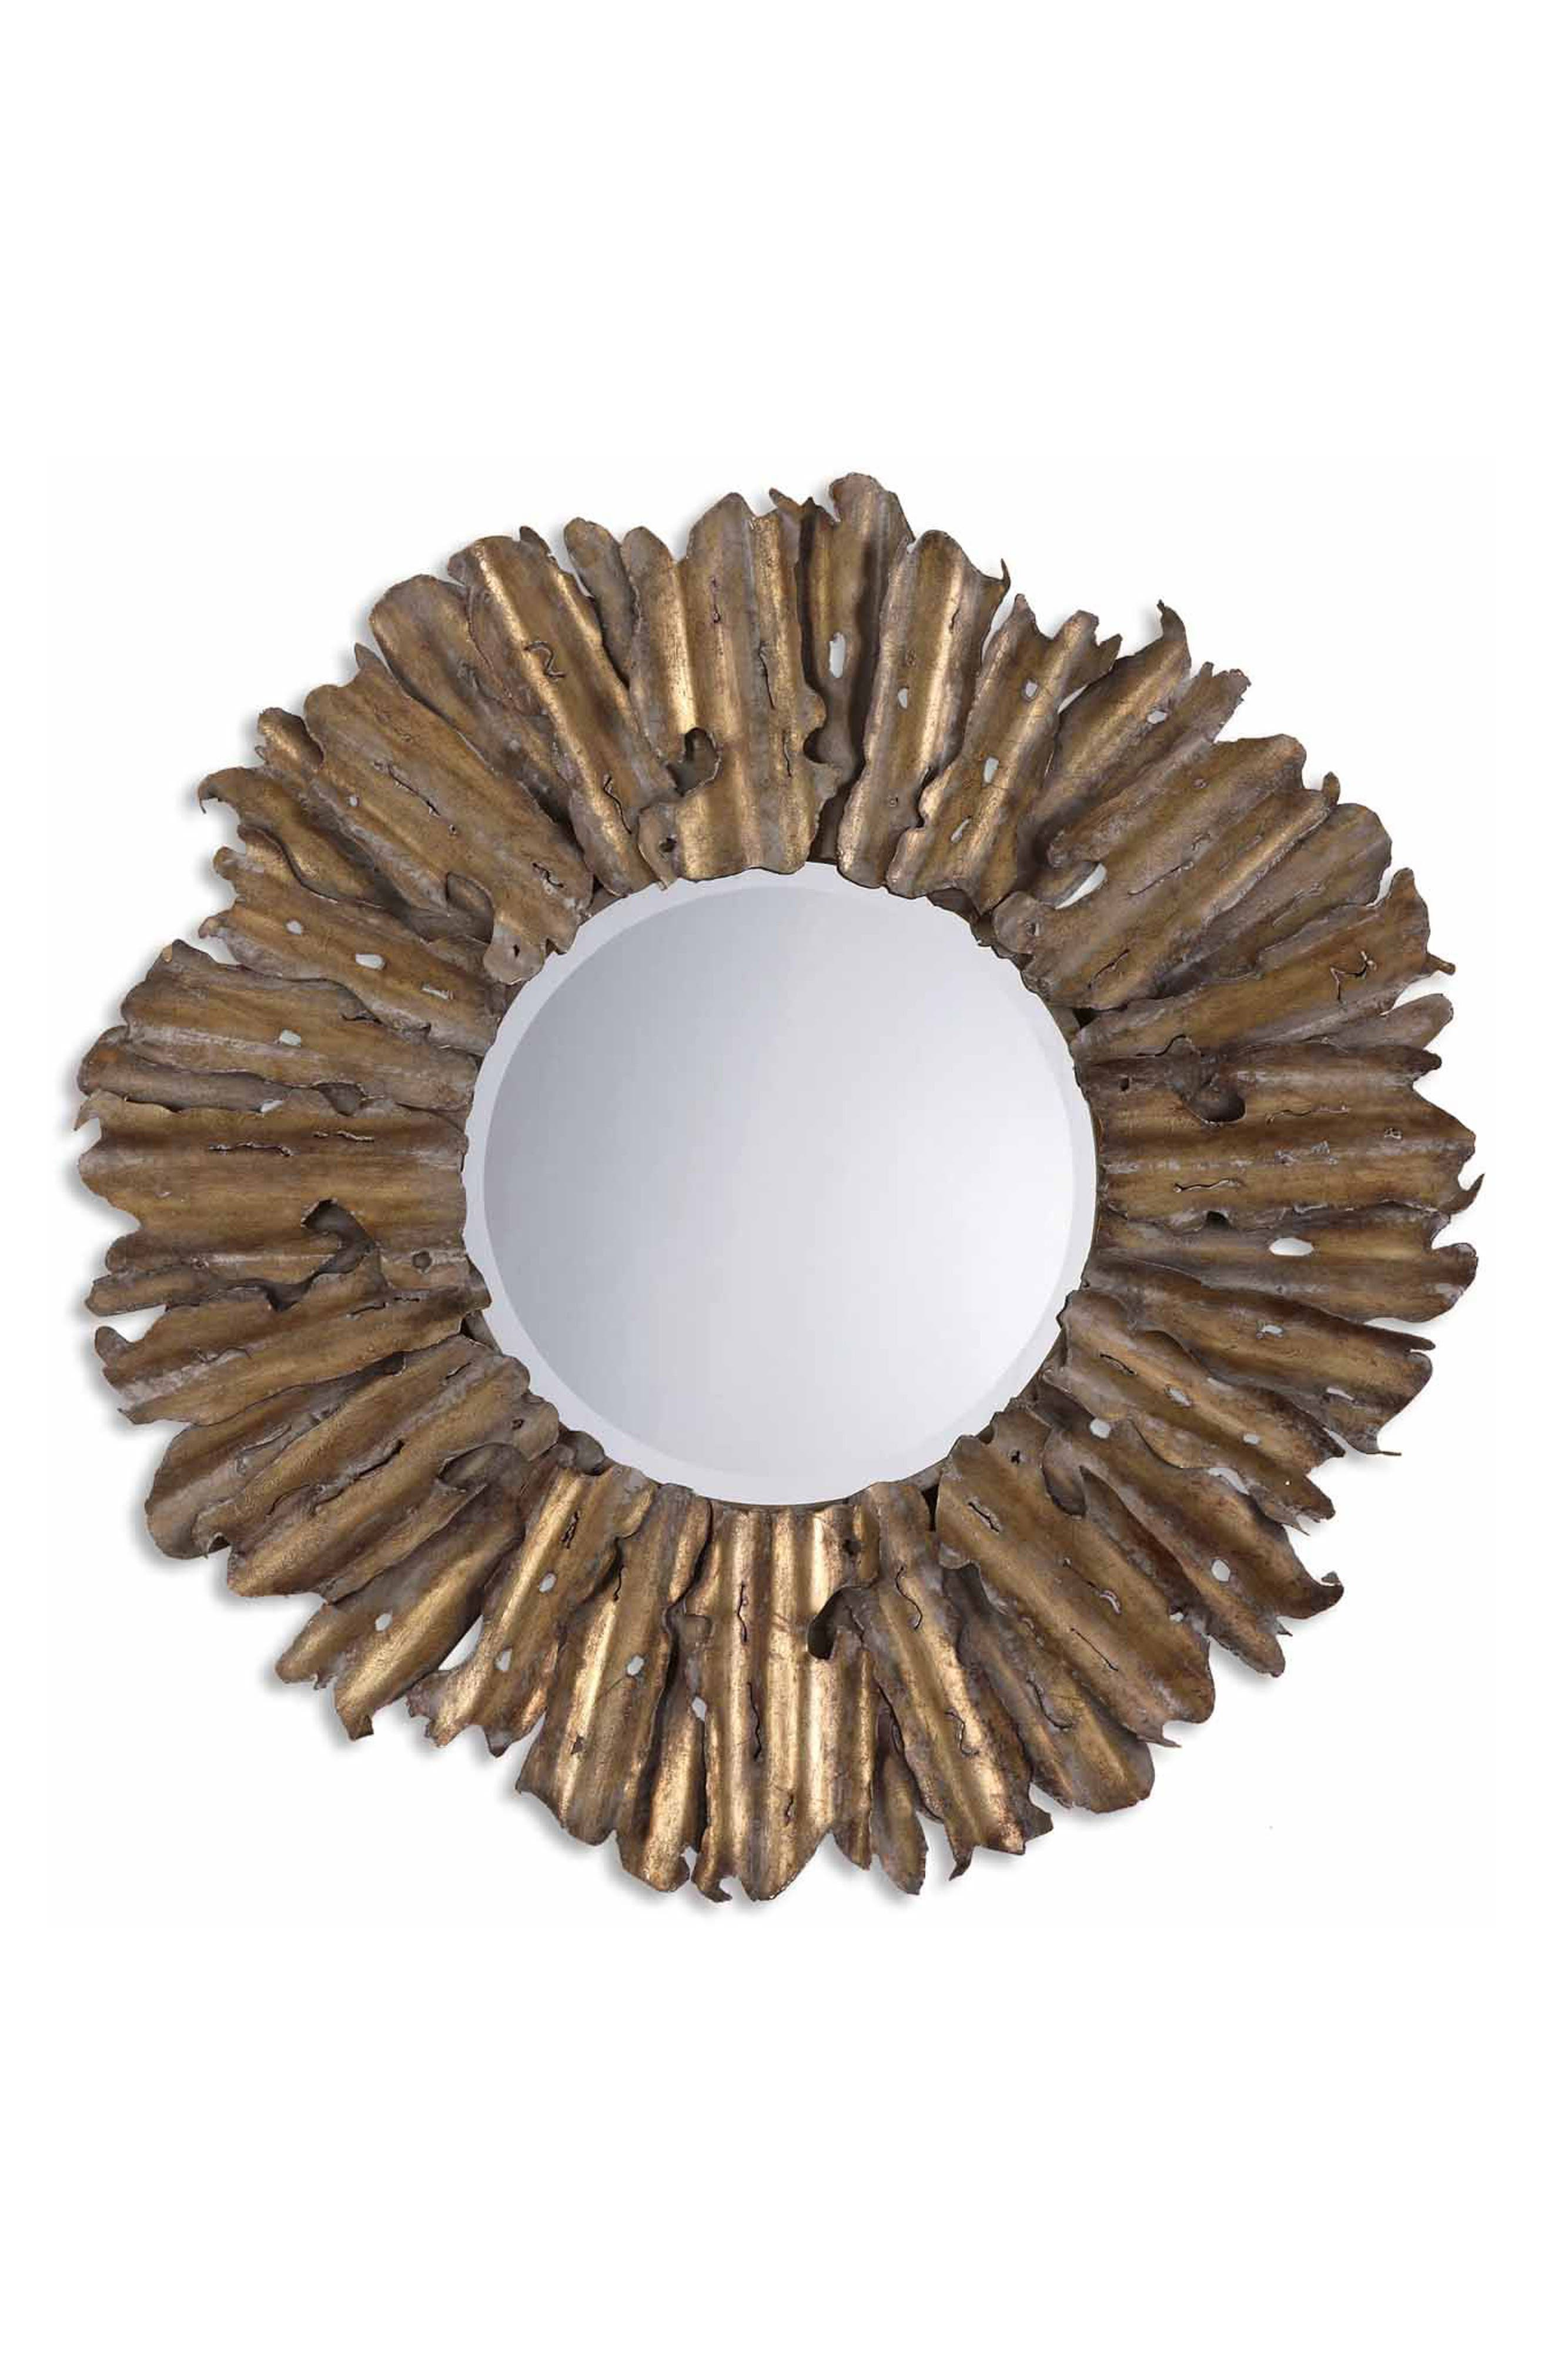 Alternate Image 1 Selected - Uttermost Hemani Wall Mirror